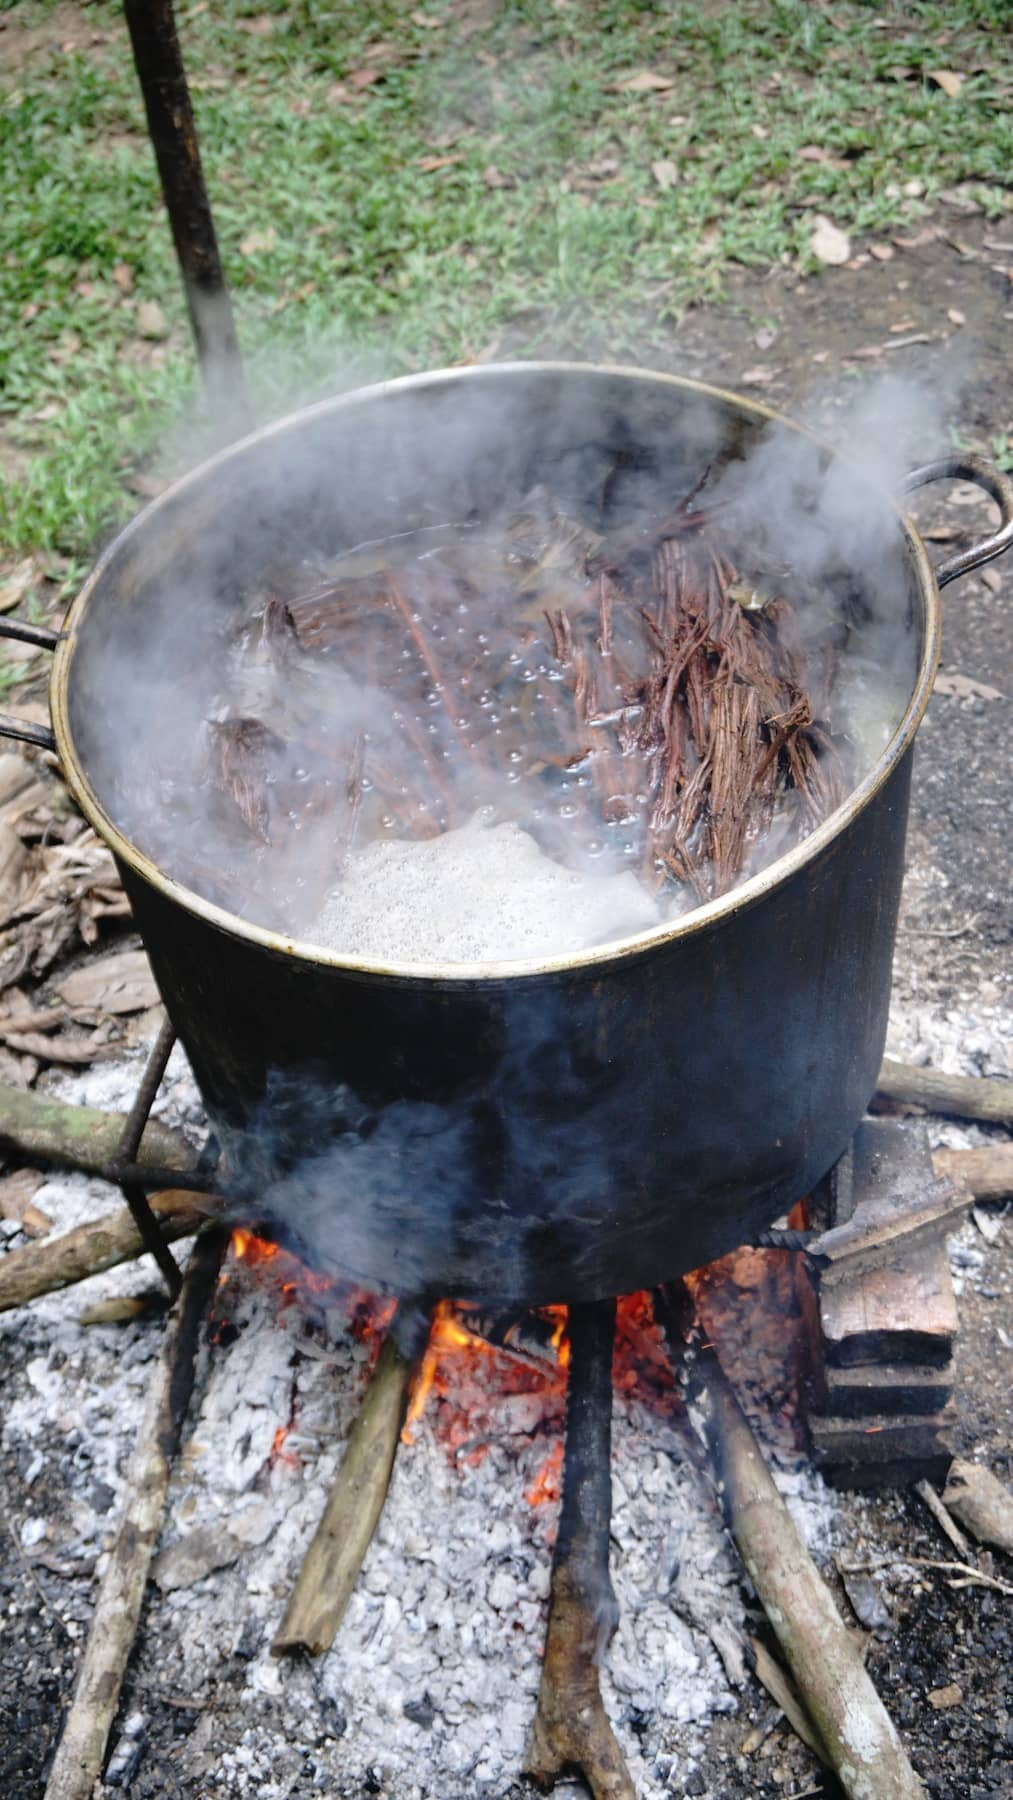 Boiling ayahuasca ingredients over fire